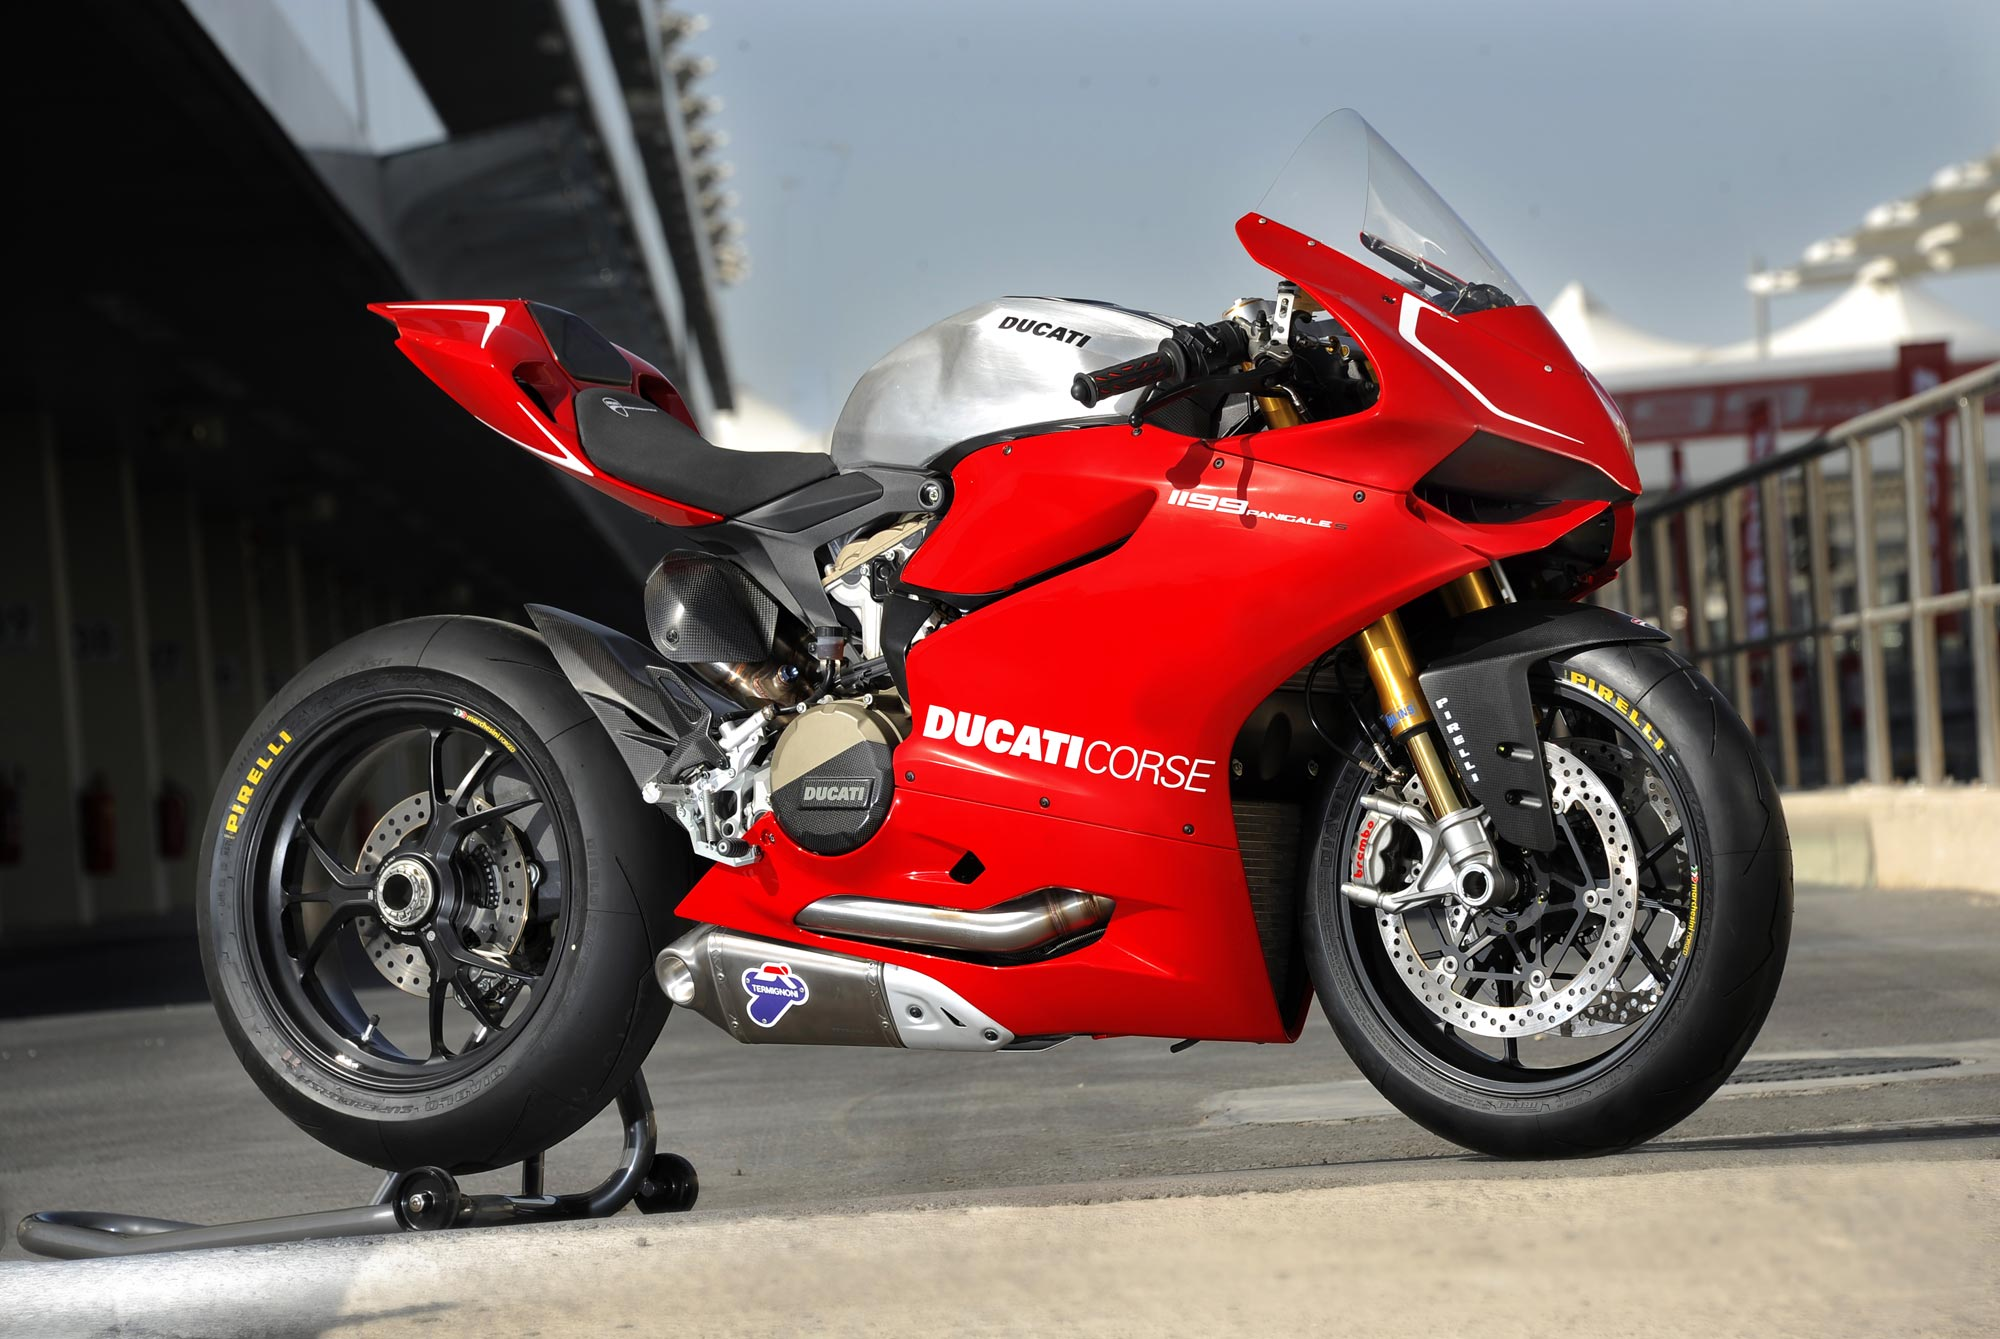 2012 ducati streetfighter 848 archives - asphalt & rubber